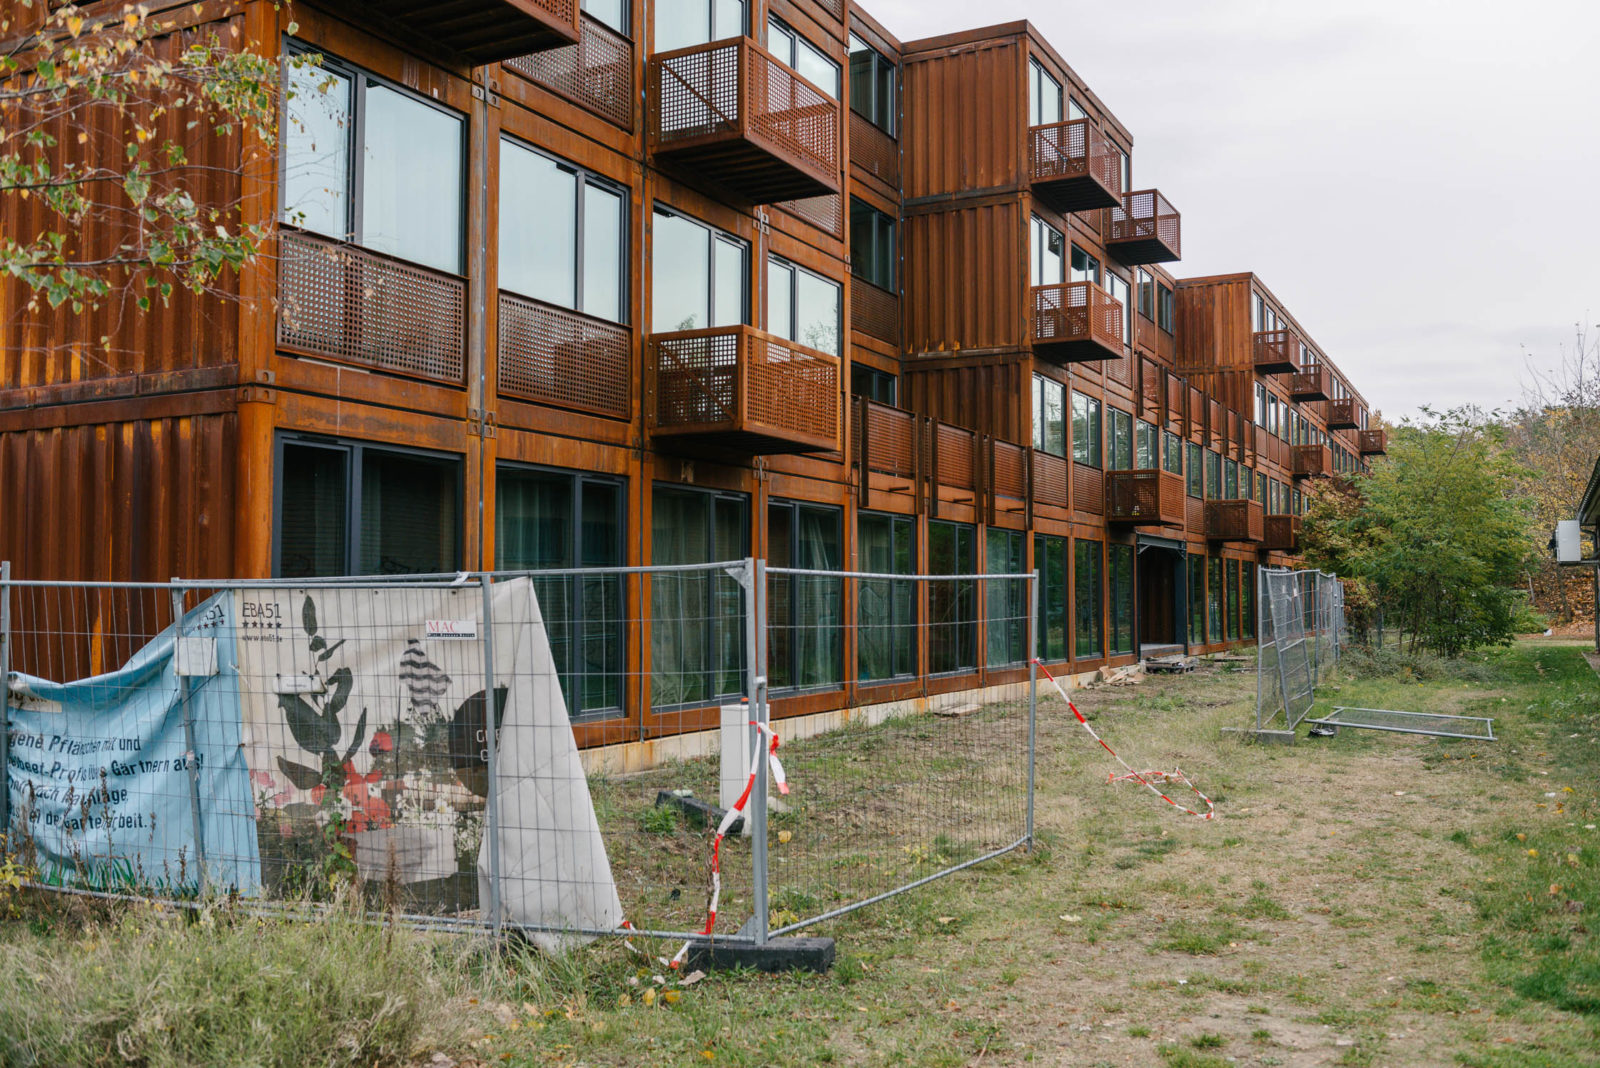 Häuser Aus Containern the poetics of smaller spaces architect oke hauser on the future of